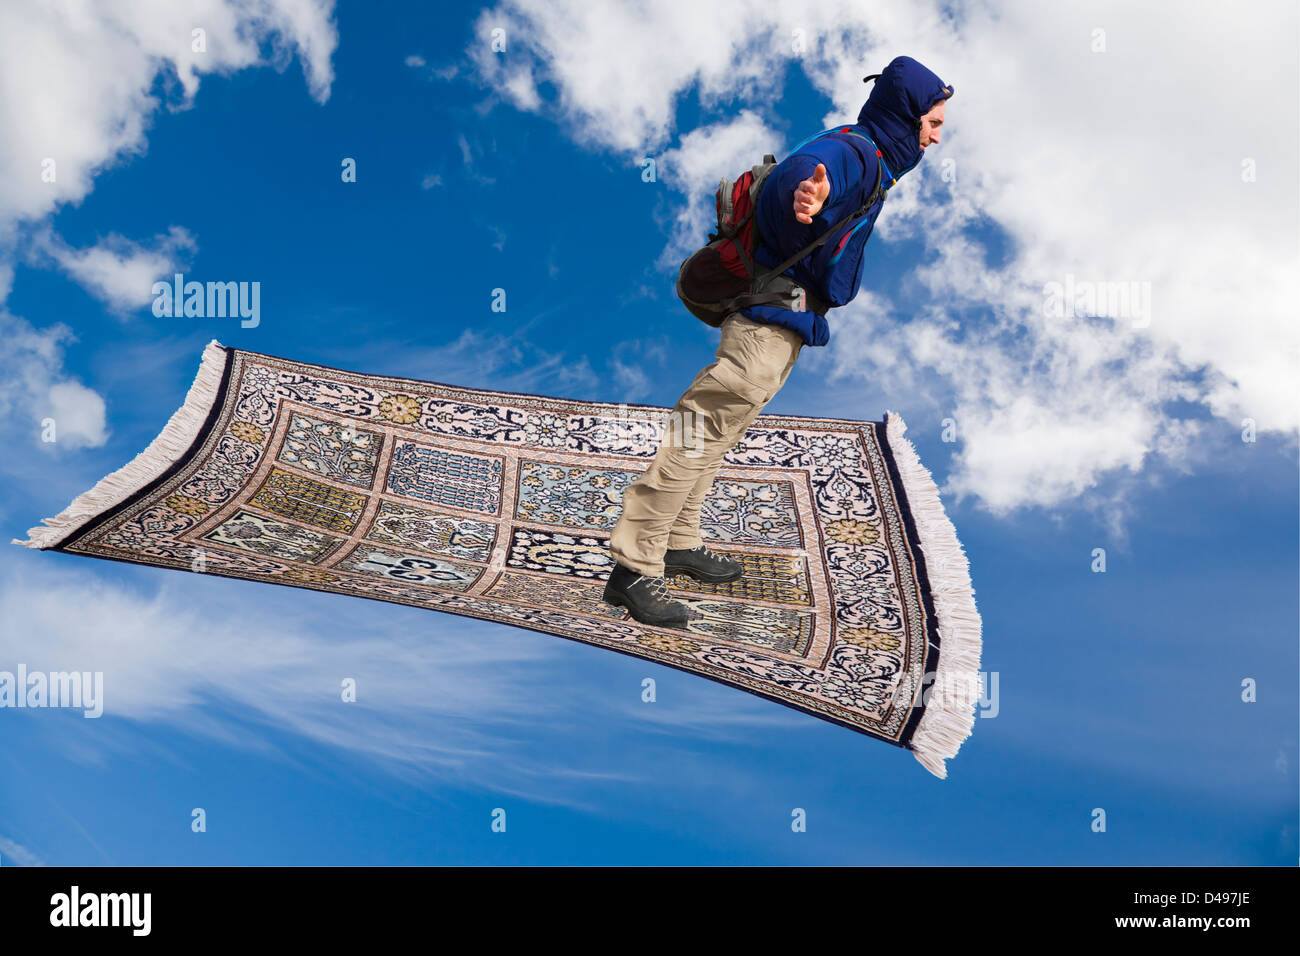 Magic Carpets Stock Photos   Magic Carpets Stock Images   Alamy Man on a magic carpet flying down across blue sky with white clouds    Stock